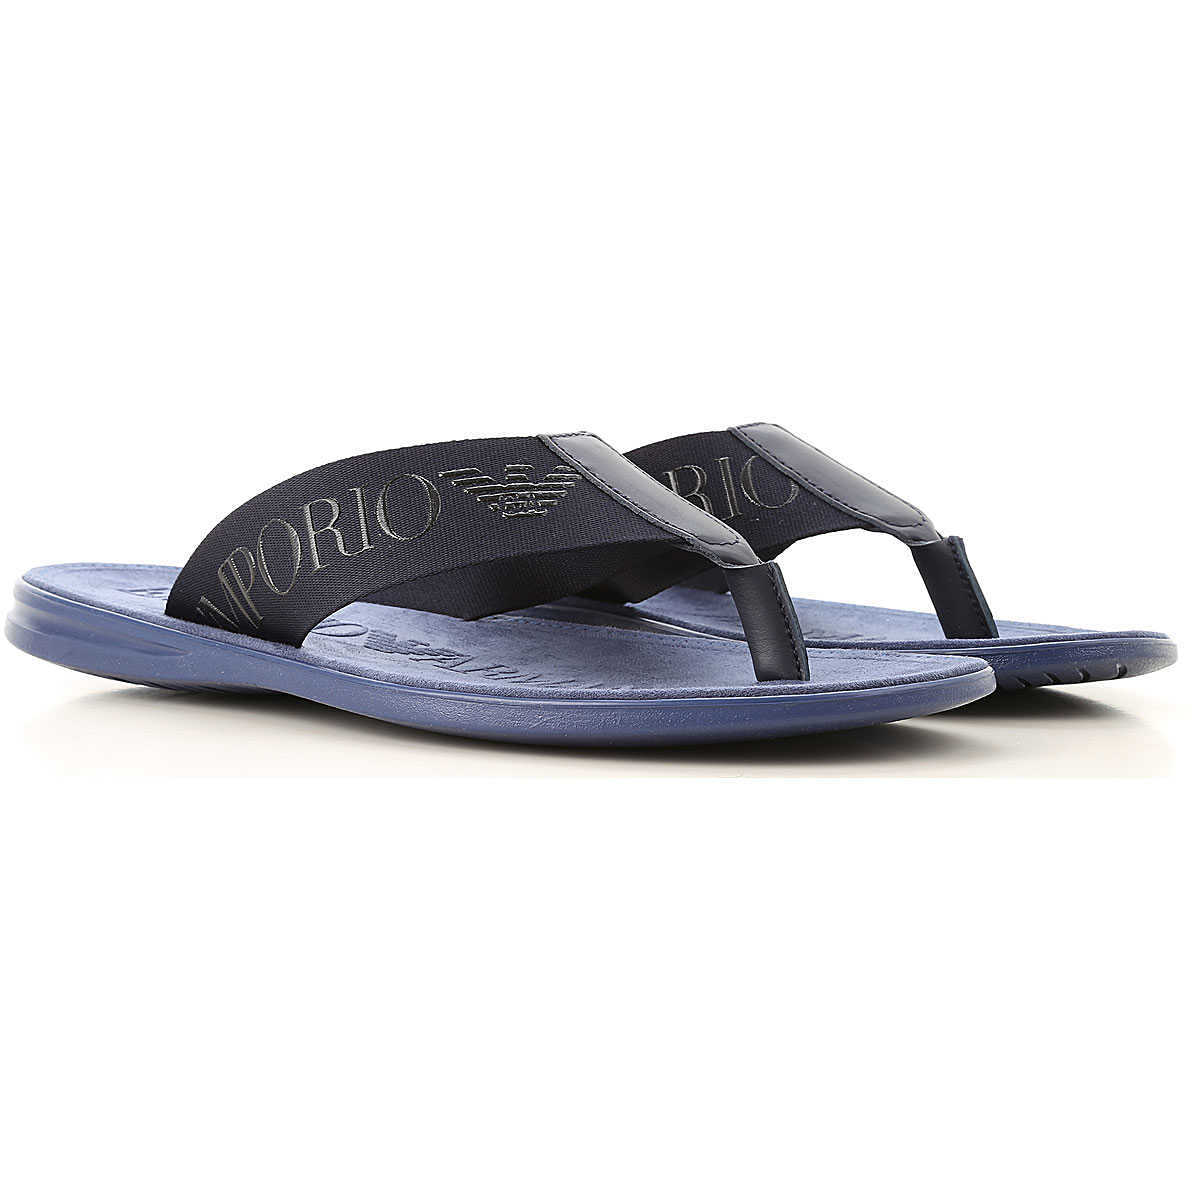 Emporio Armani Sandals for Men On Sale Night Blue DK - GOOFASH - Mens SANDALS